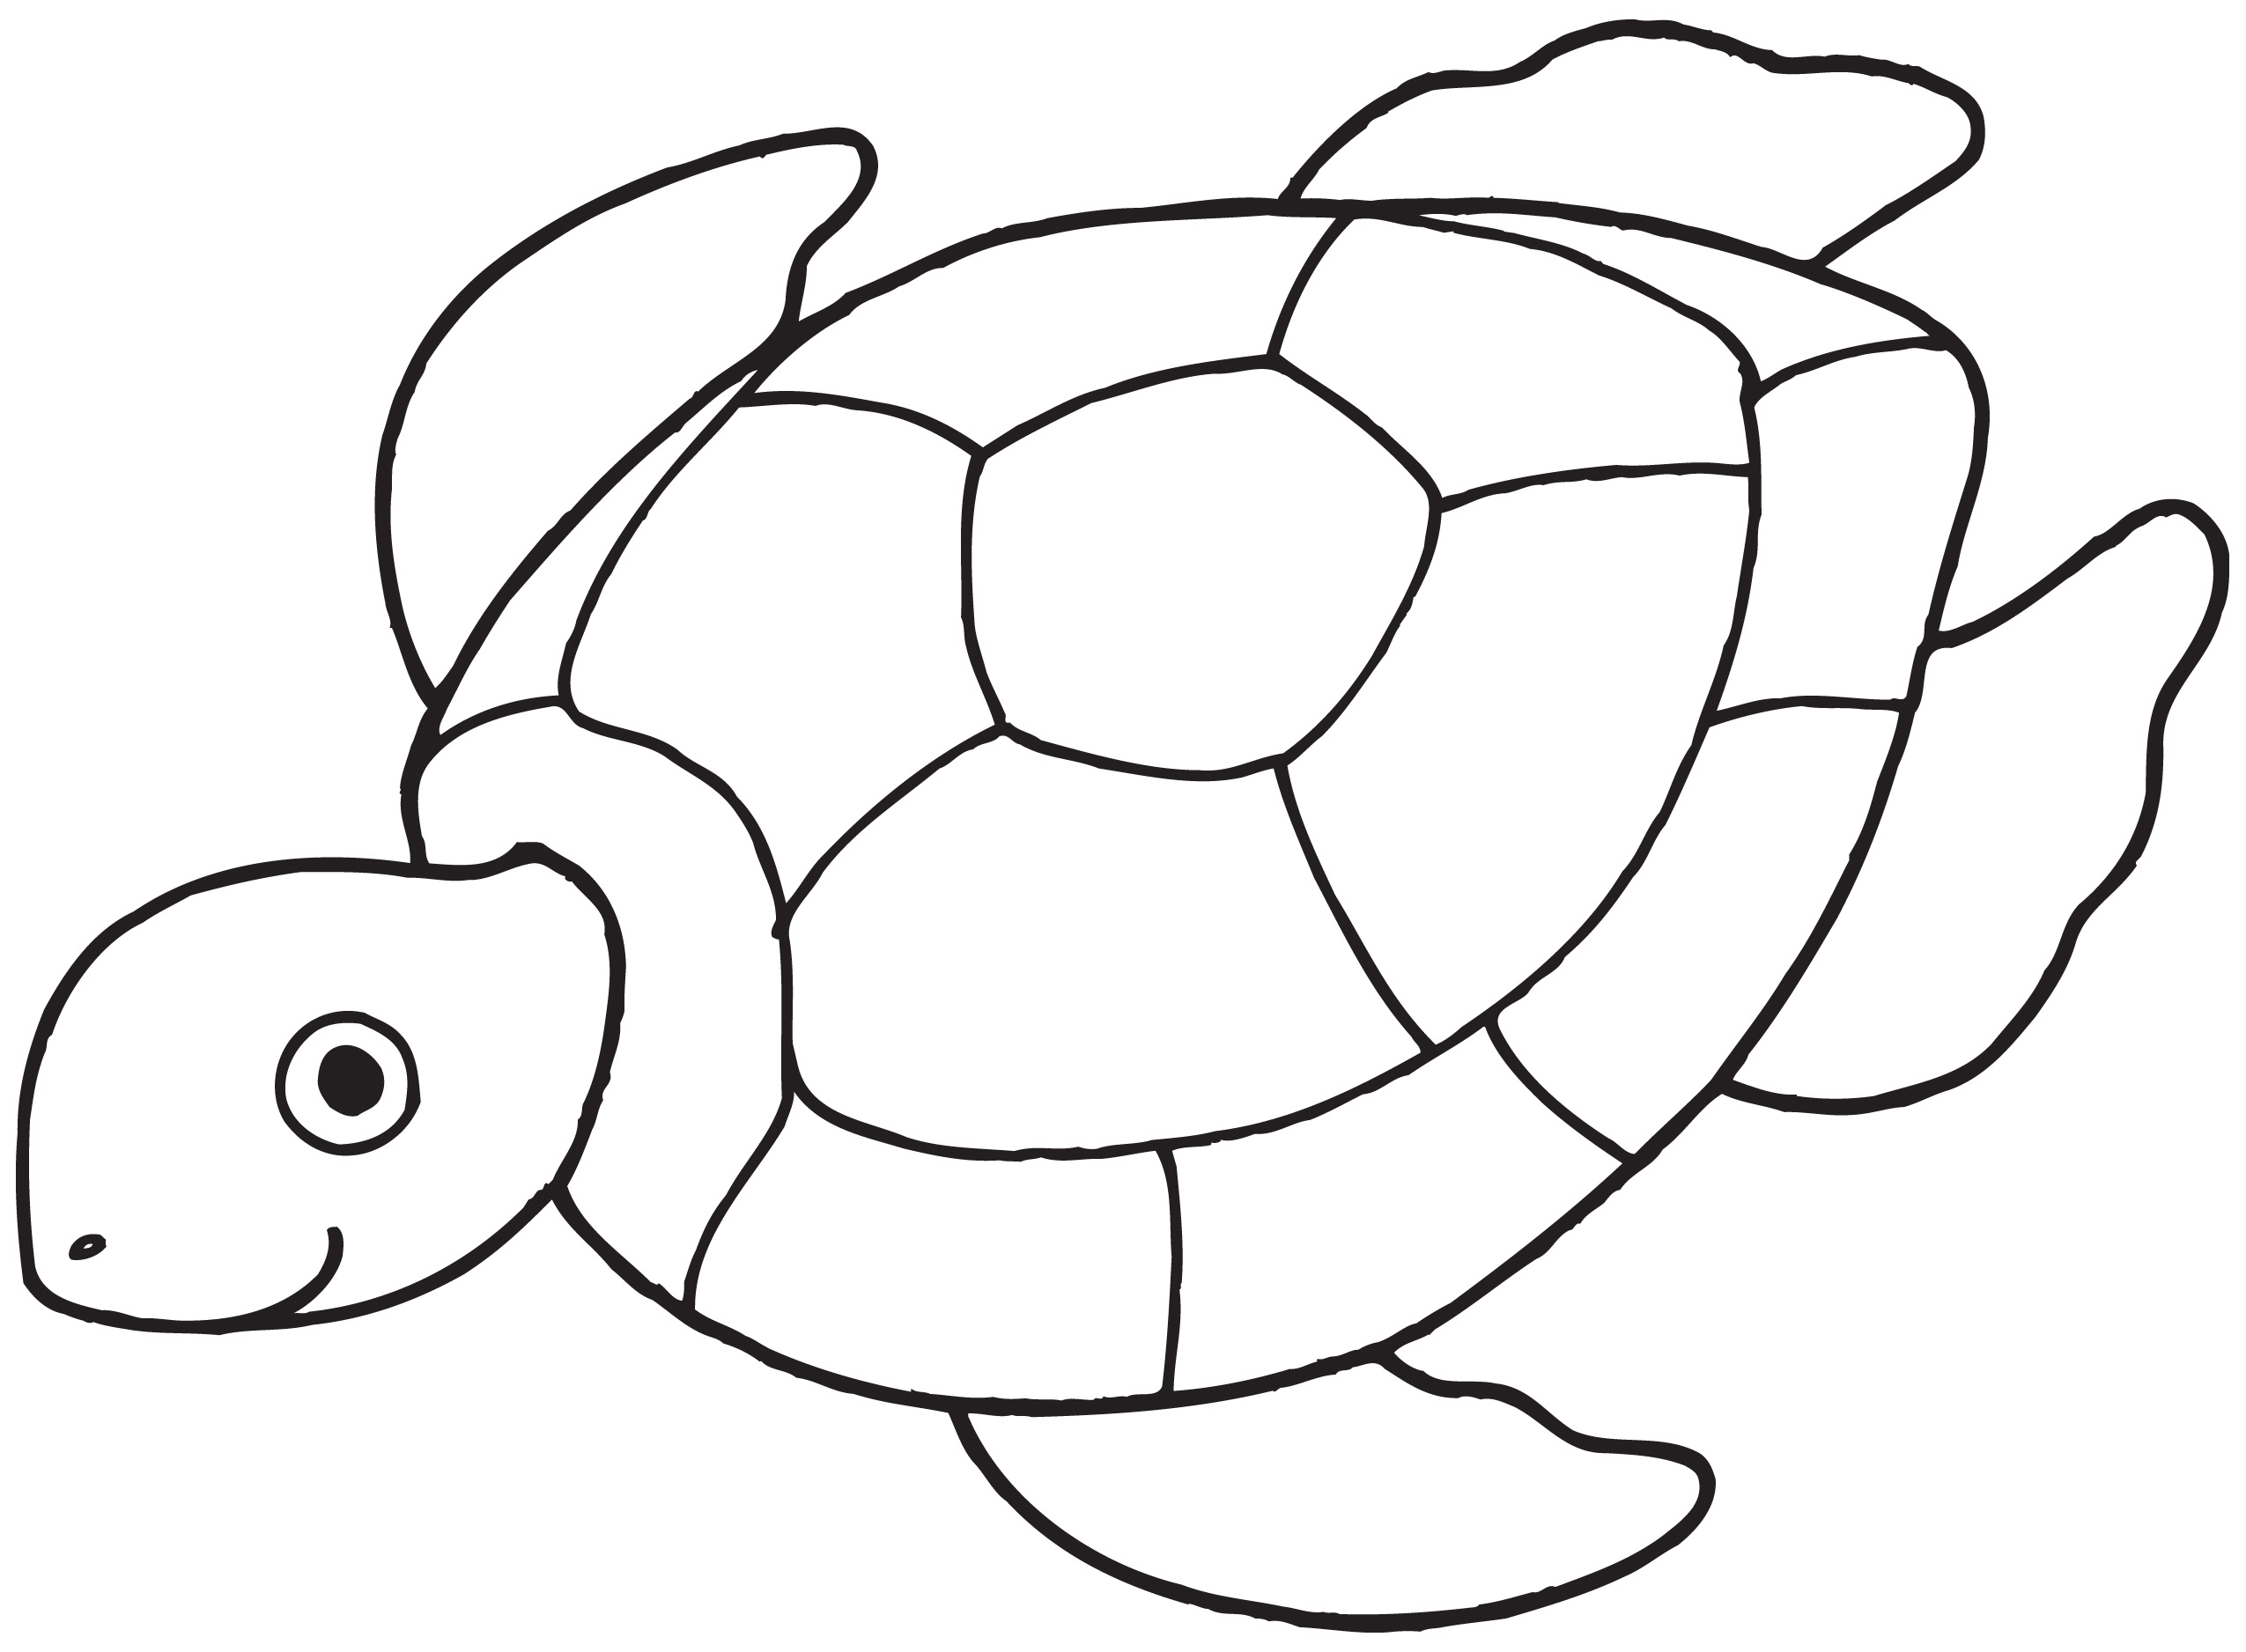 Cute Sea Turtle Clip Art